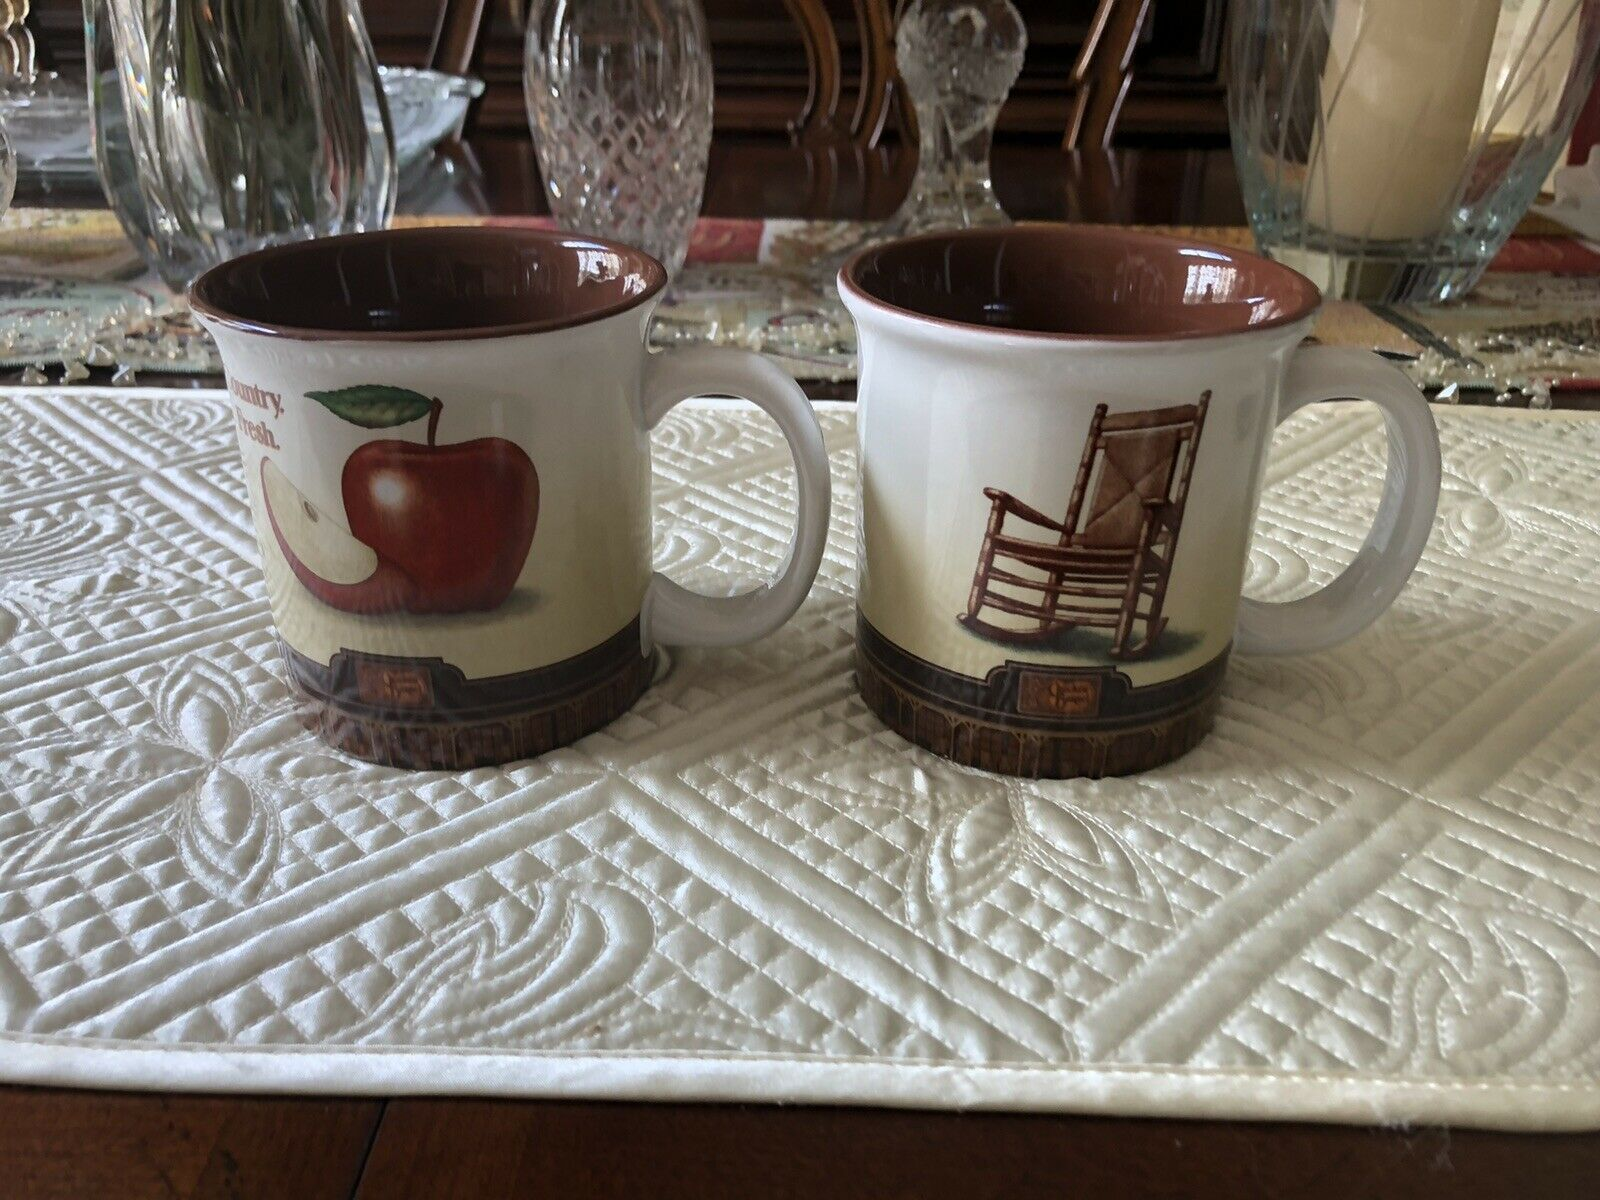 Set Of 2 Large Cracker Barrel Old Country Store Mugs Ebay Old Country Stores Mugs Cracker Barrel